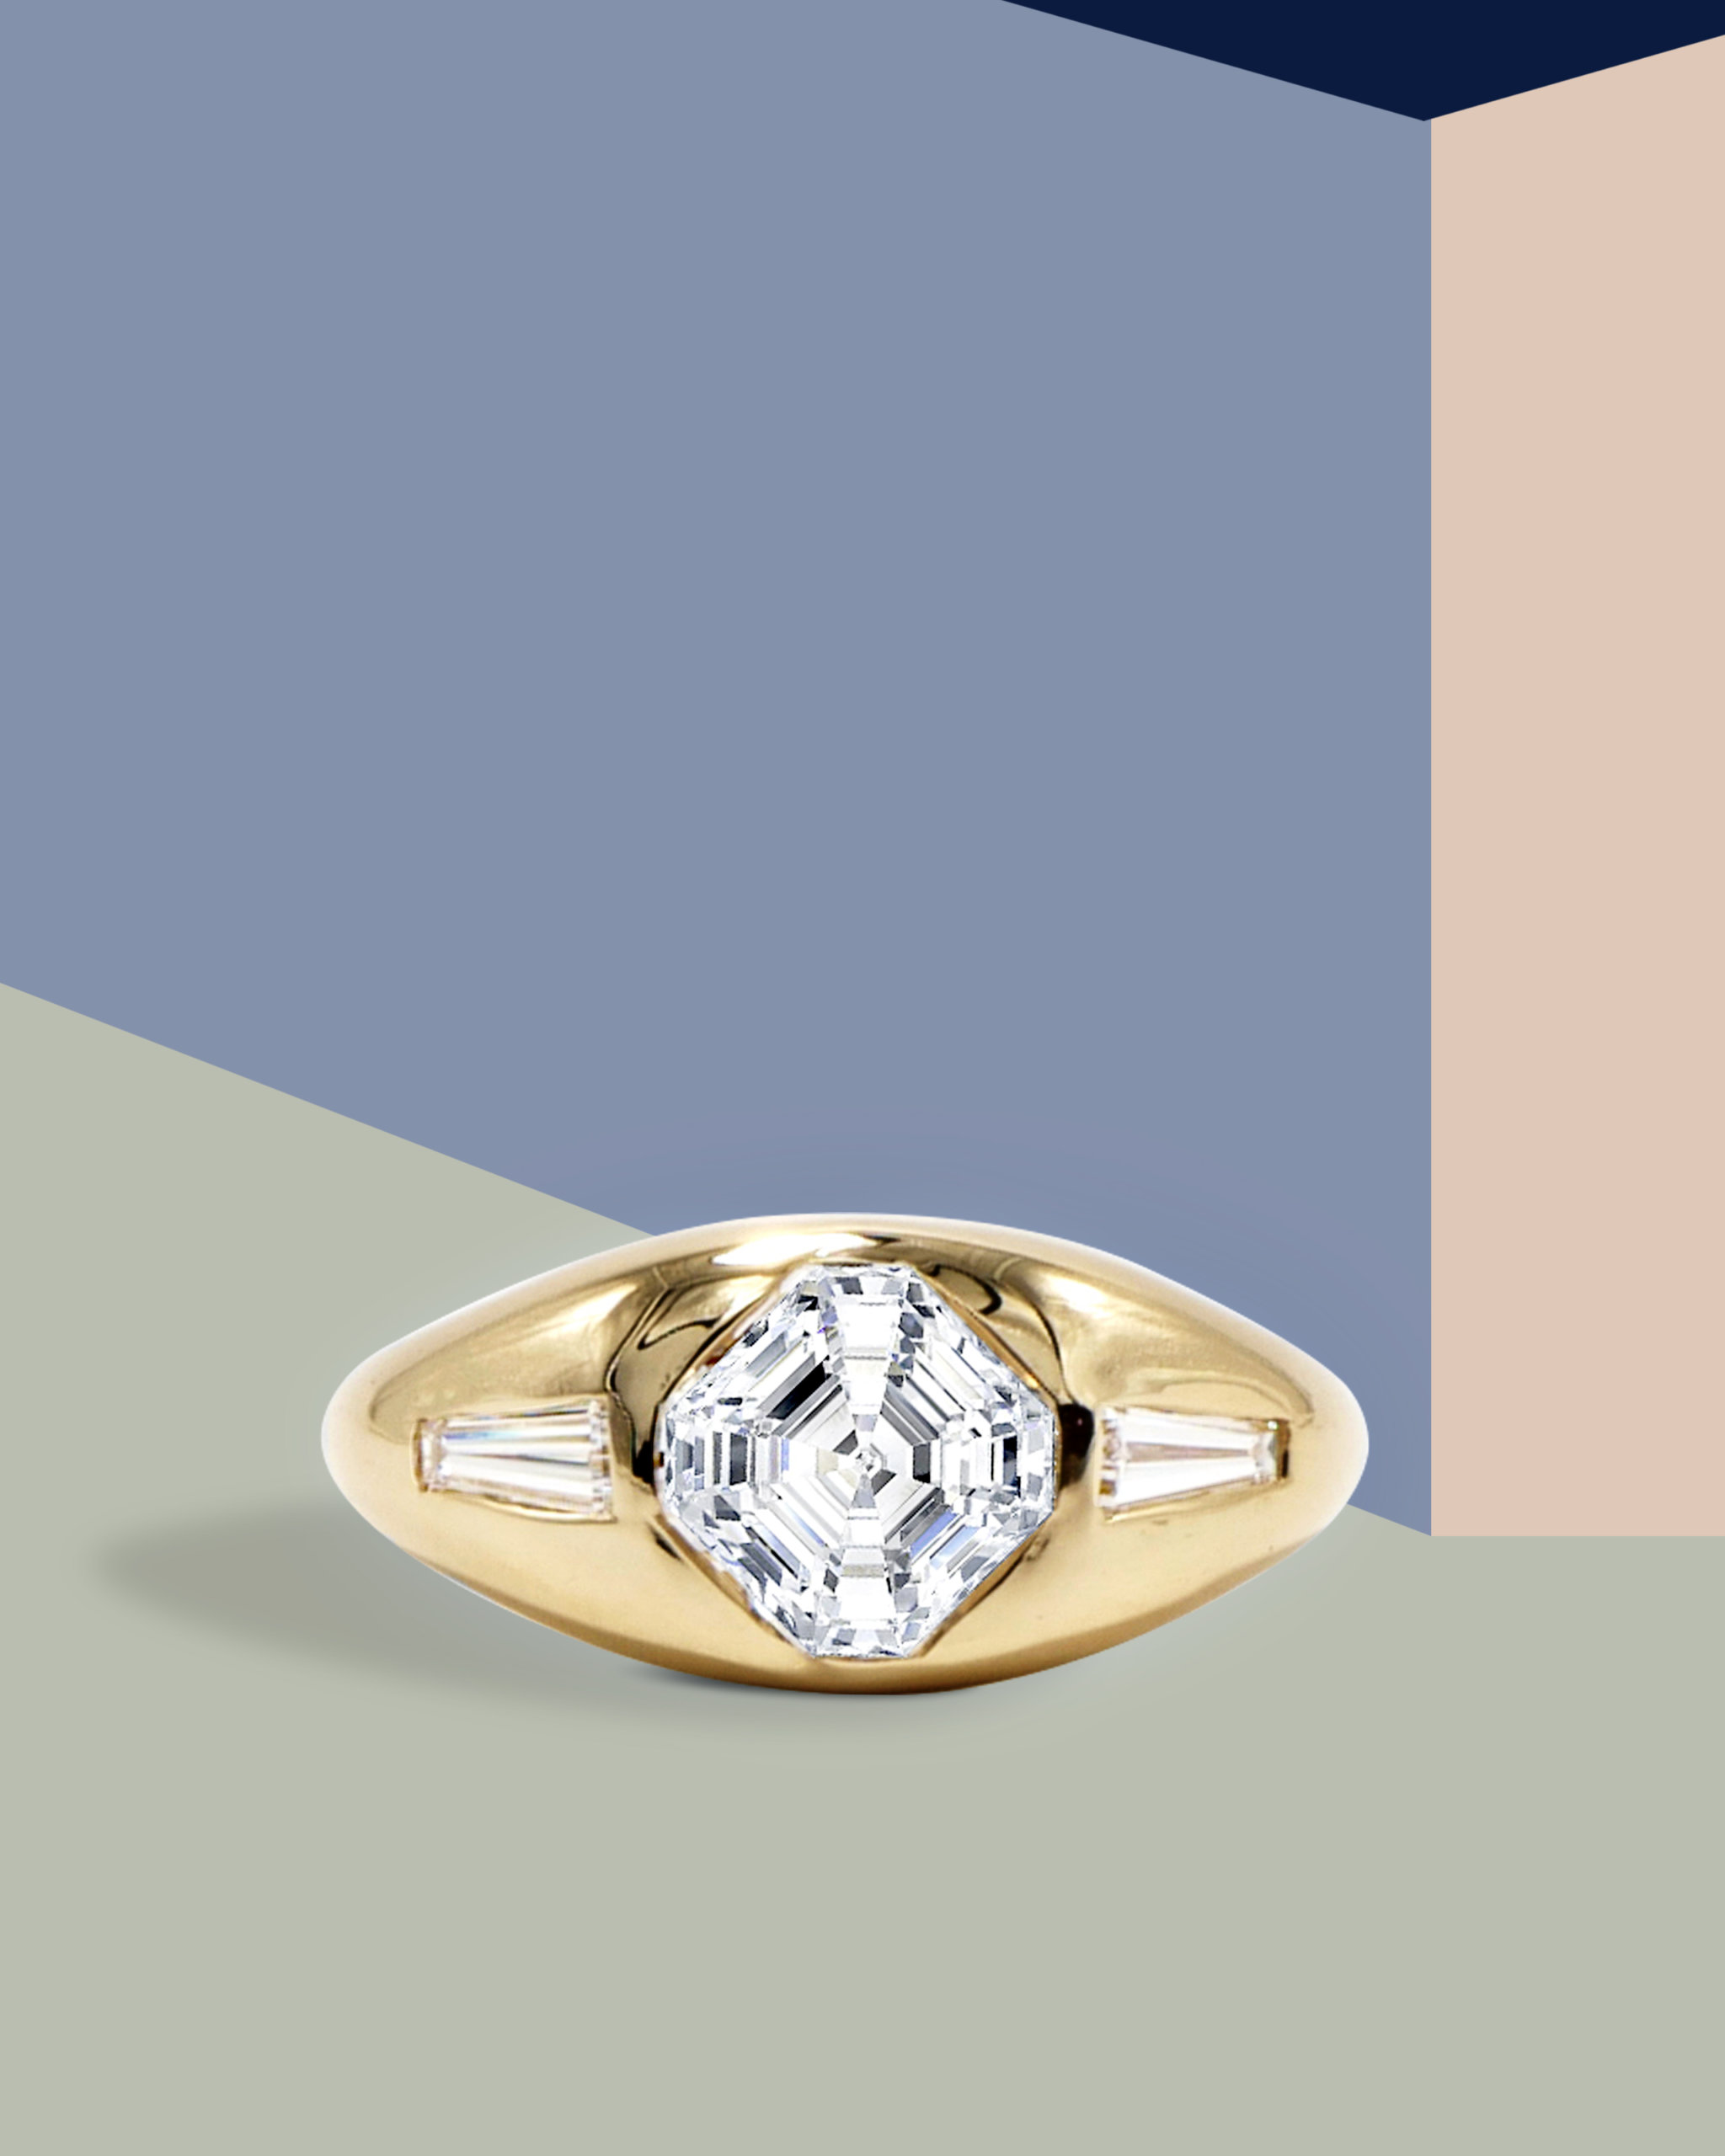 Dome-shaped gypsy engagement ring in yellow gold with a center Asscher cut diamond and two side baguette diamonds